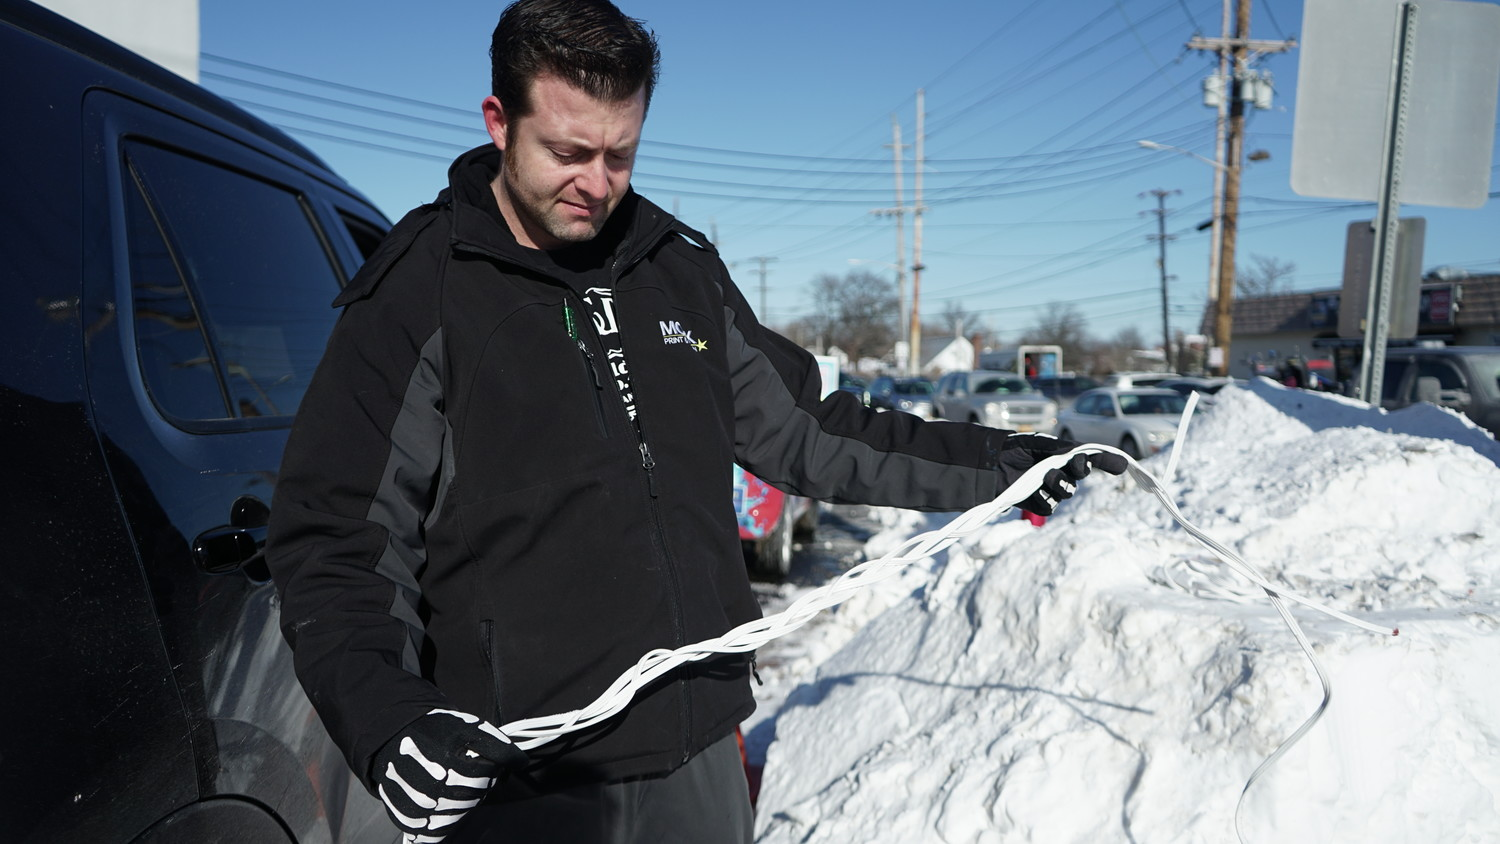 Taglianetti bought three extension cords from a nearby convenience store and braided them together, creating a makeshift tow cable.